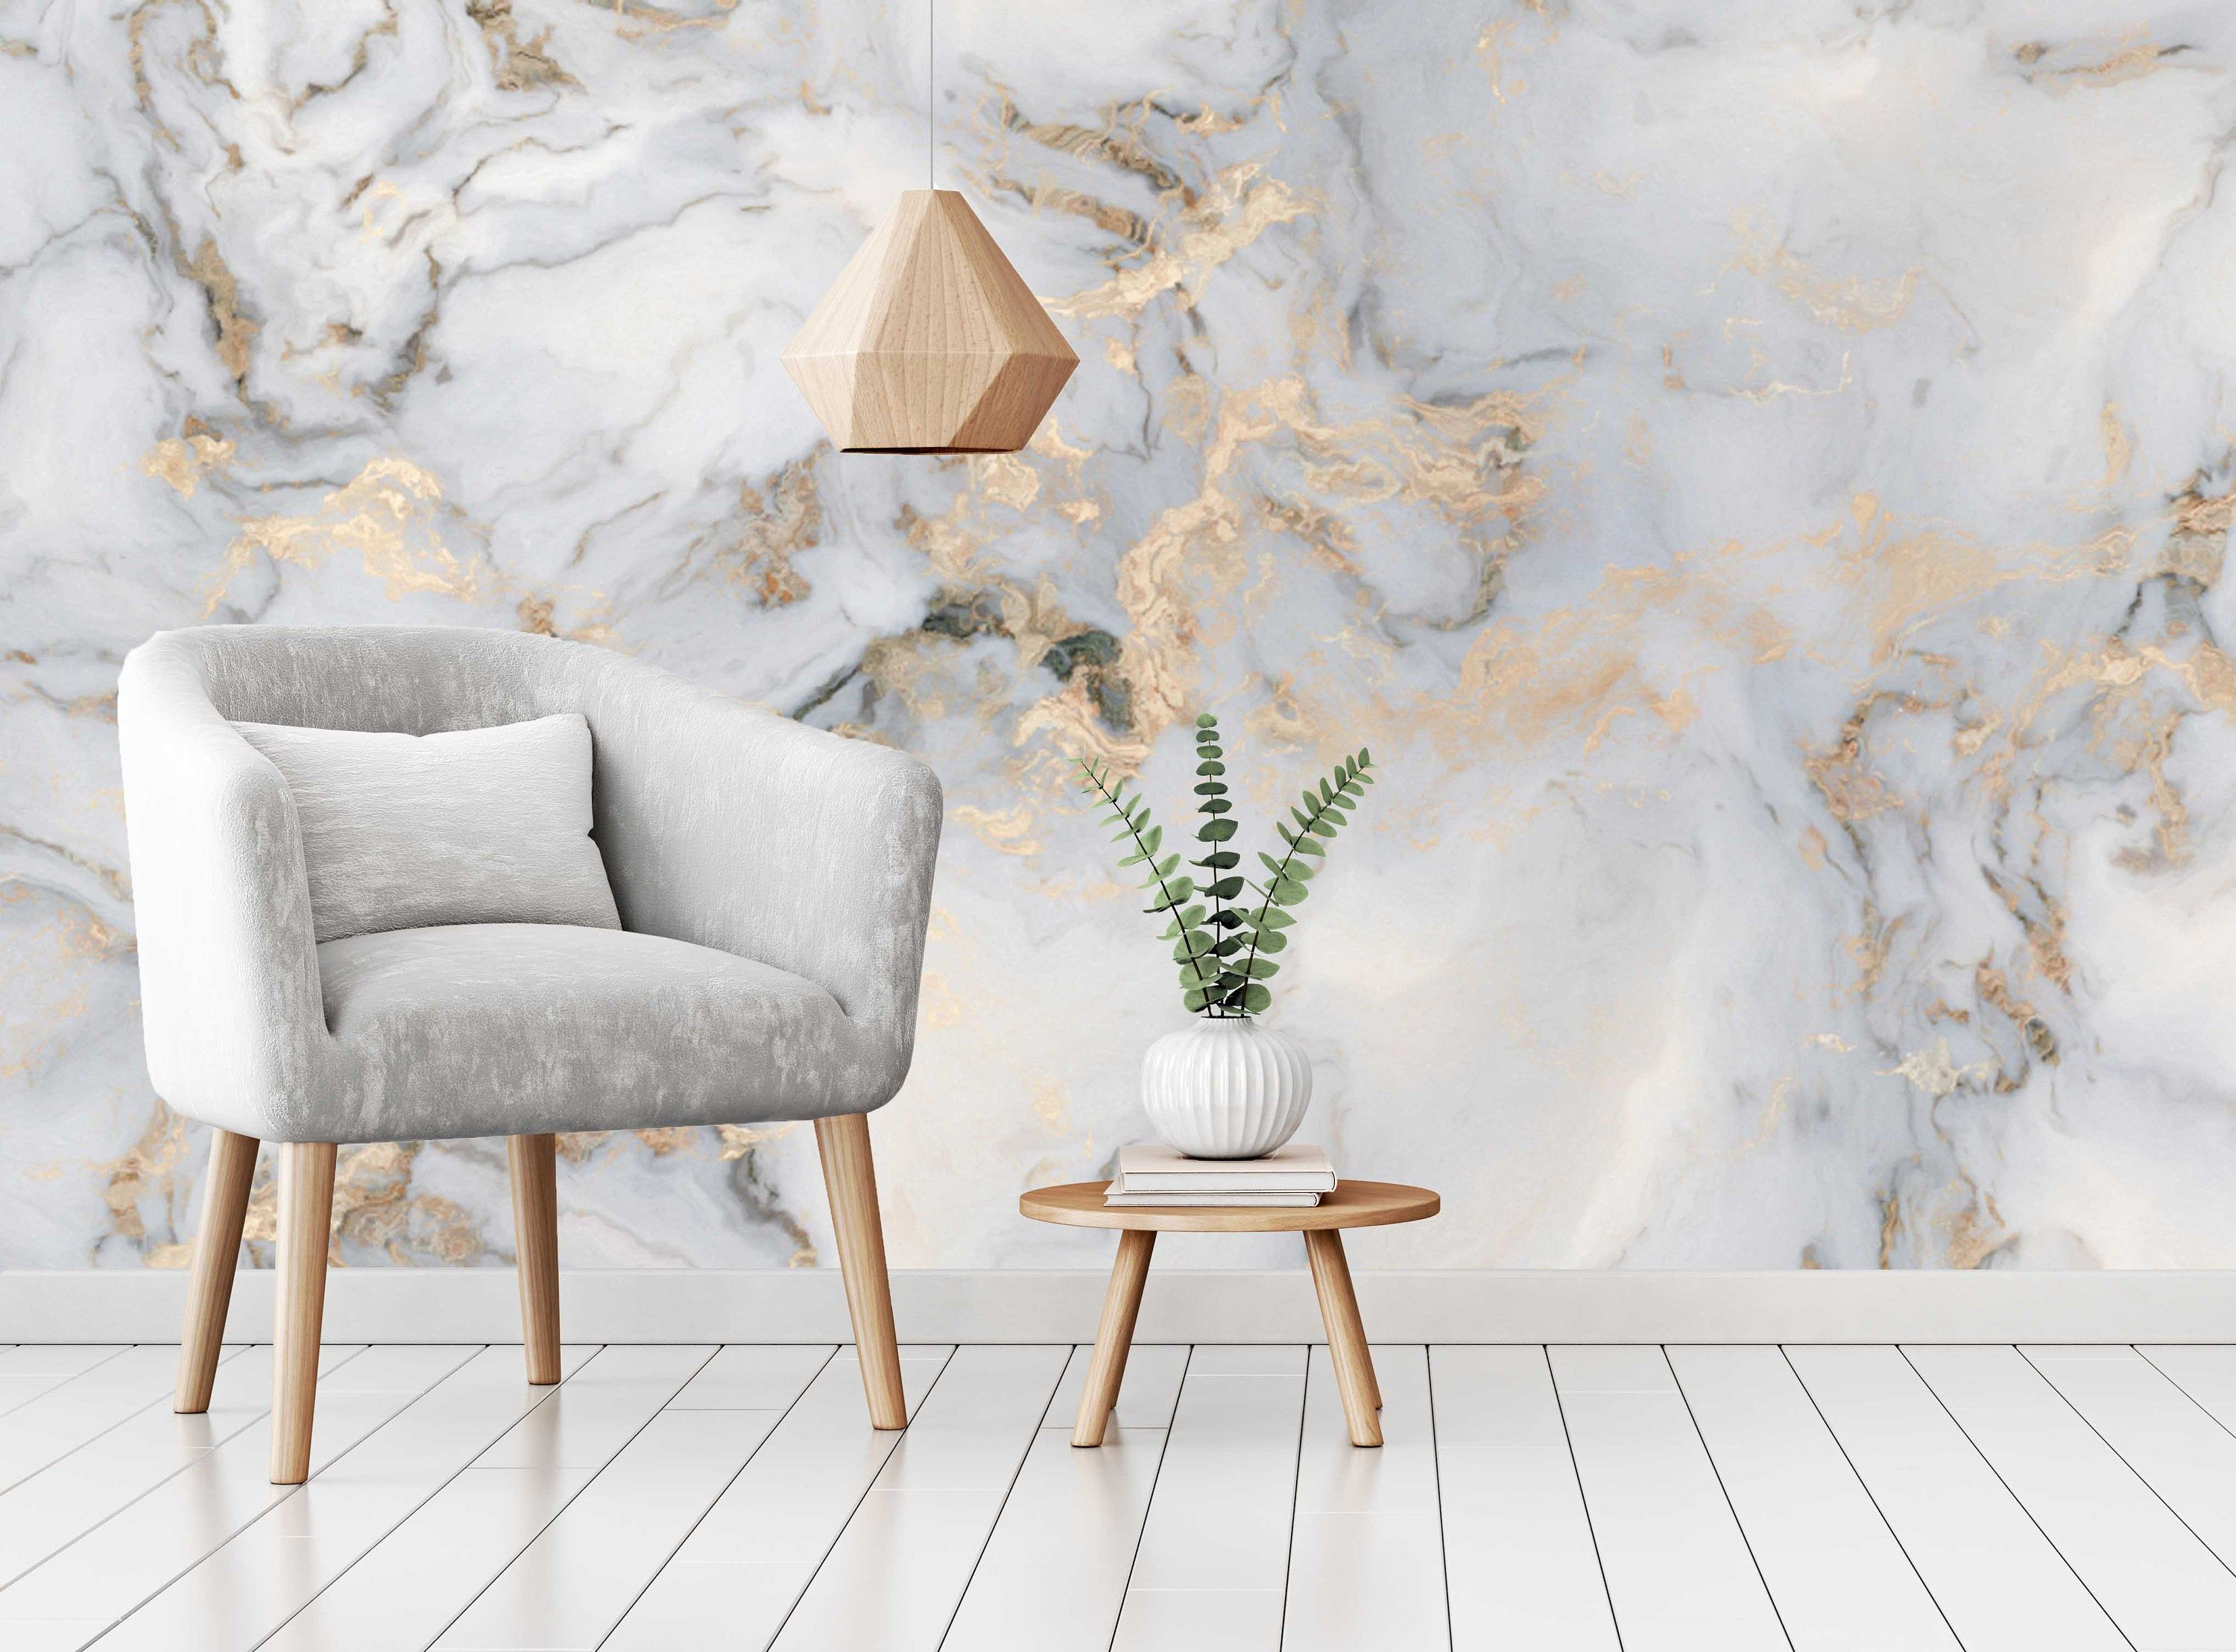 Marble Texture Gray Golden Look Abstract Design Wallpaper Self Adhesive Peel And Stick Wall Sticker Wall Decoration Scandinavian Removable Gold Marble Wallpaper Marble Wall Mural Grey And Gold Wallpaper